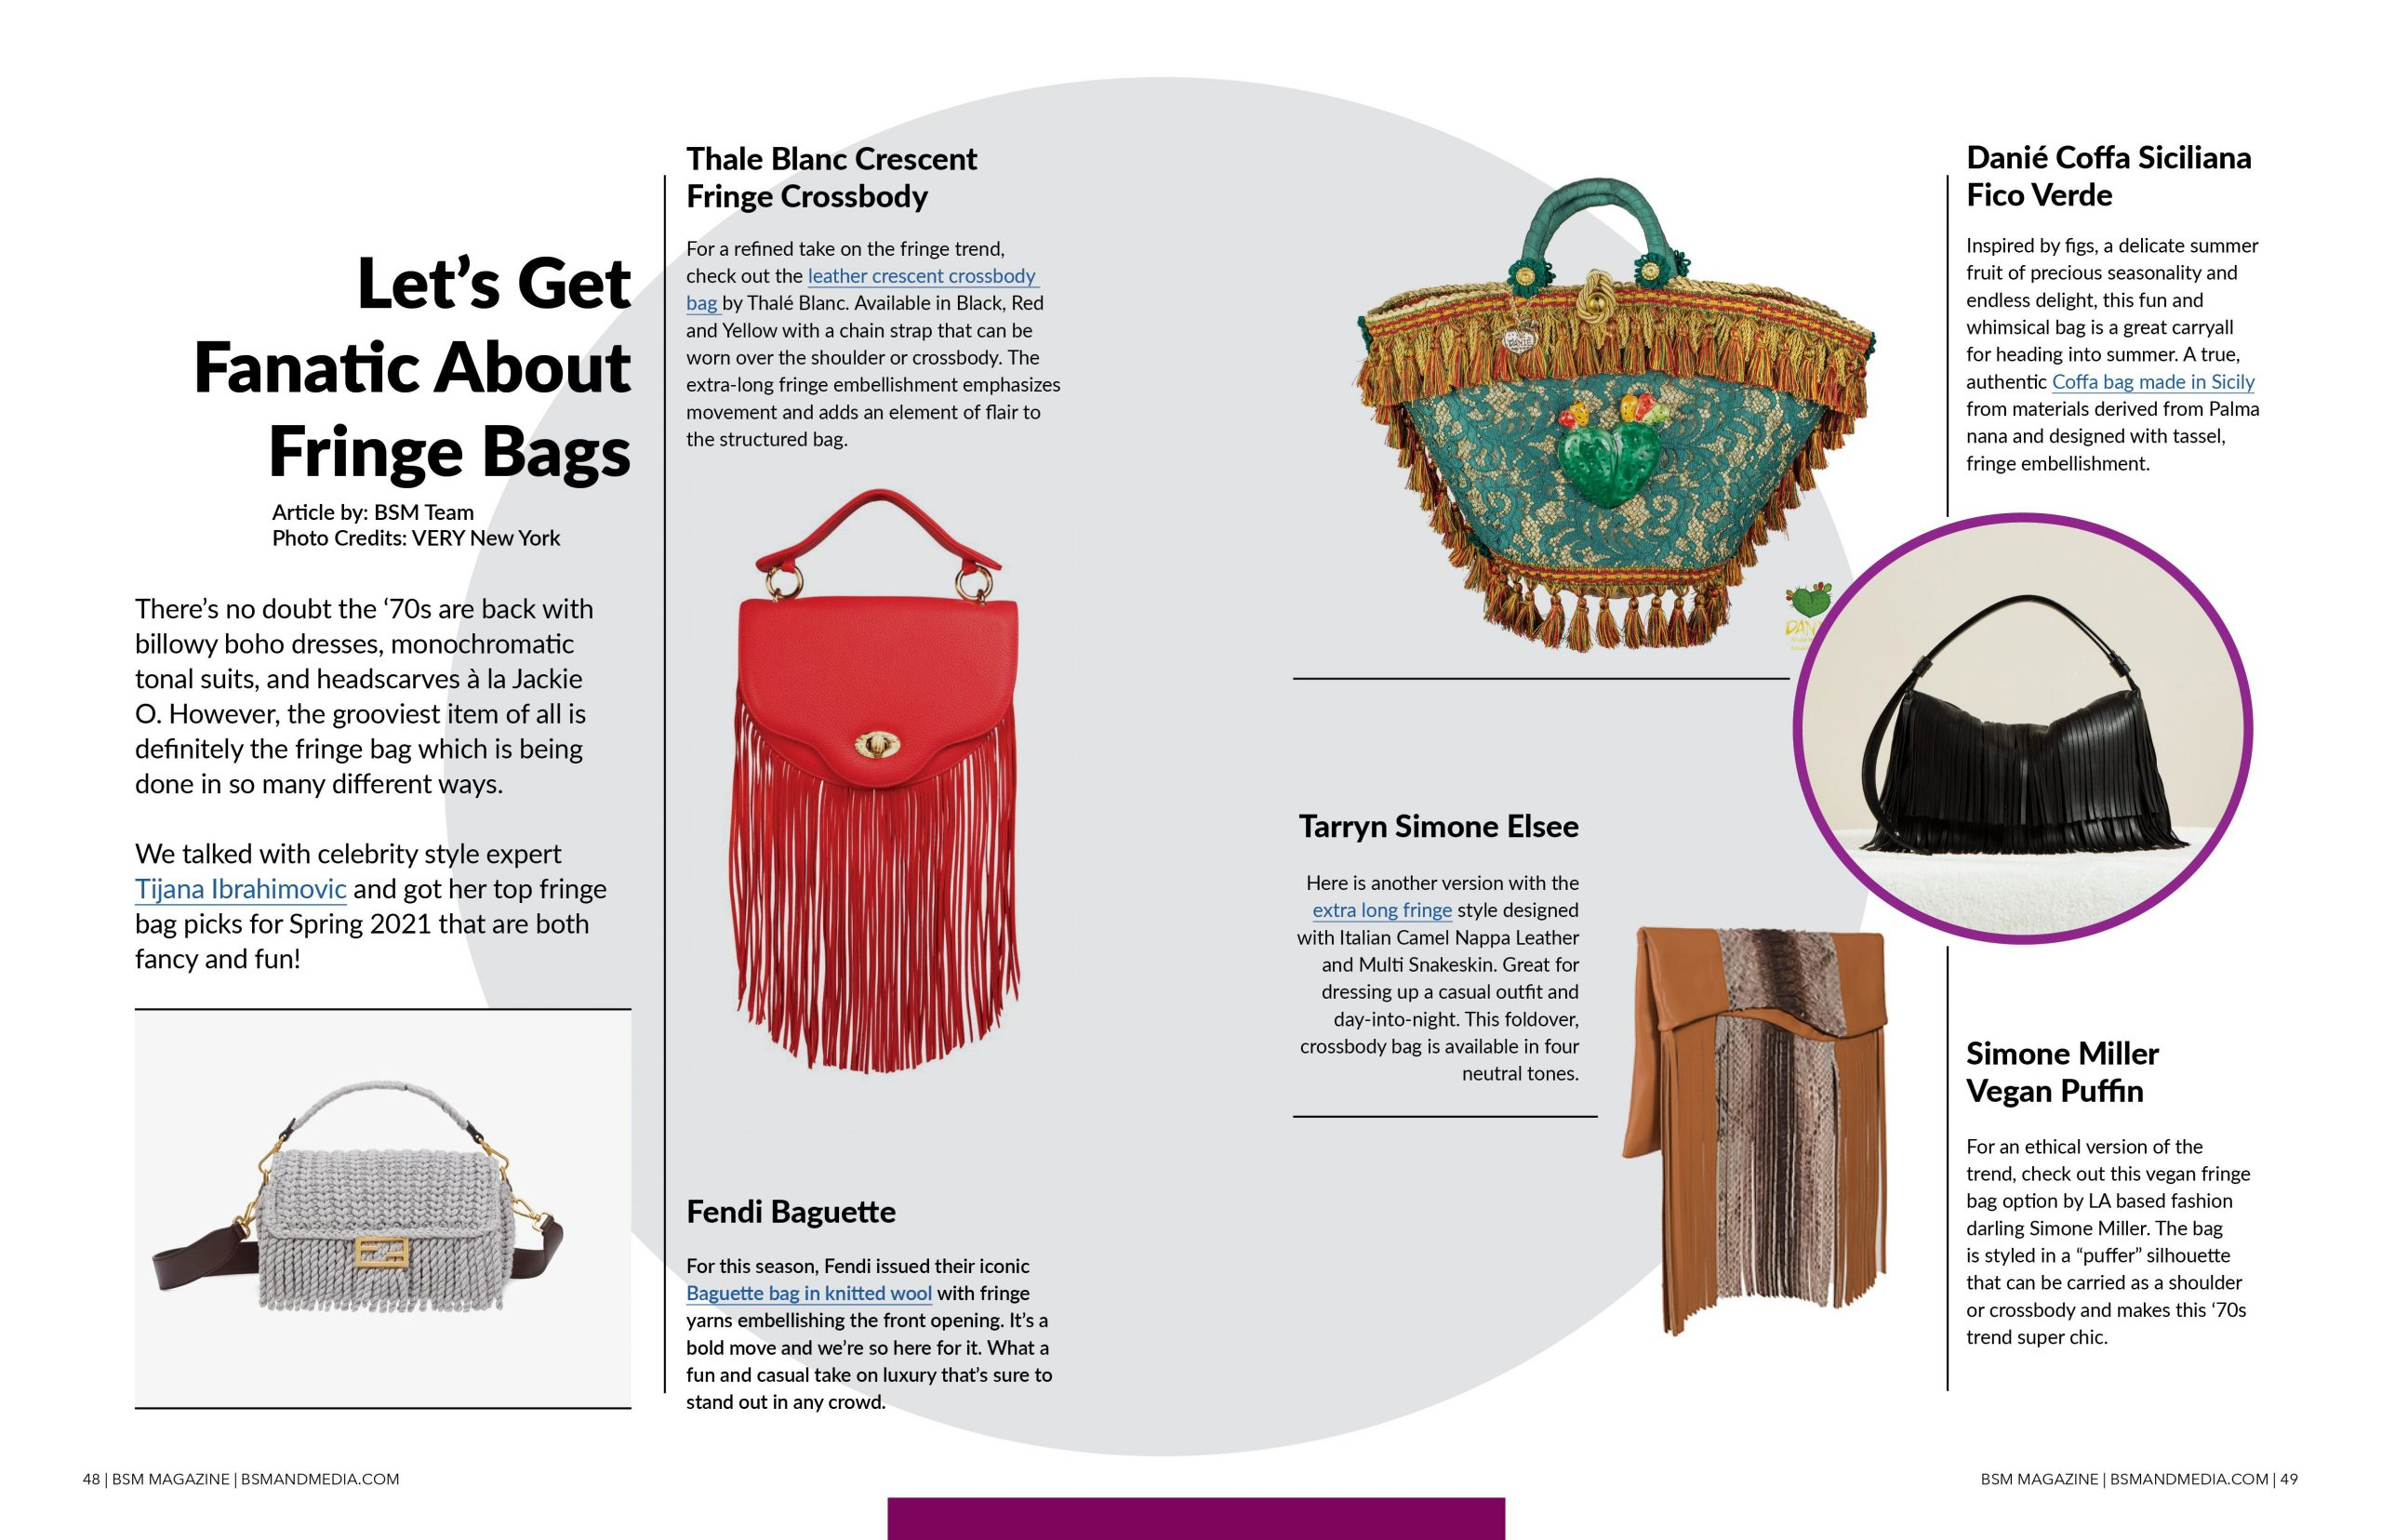 Let's Get Fanatic About Fringe Bags